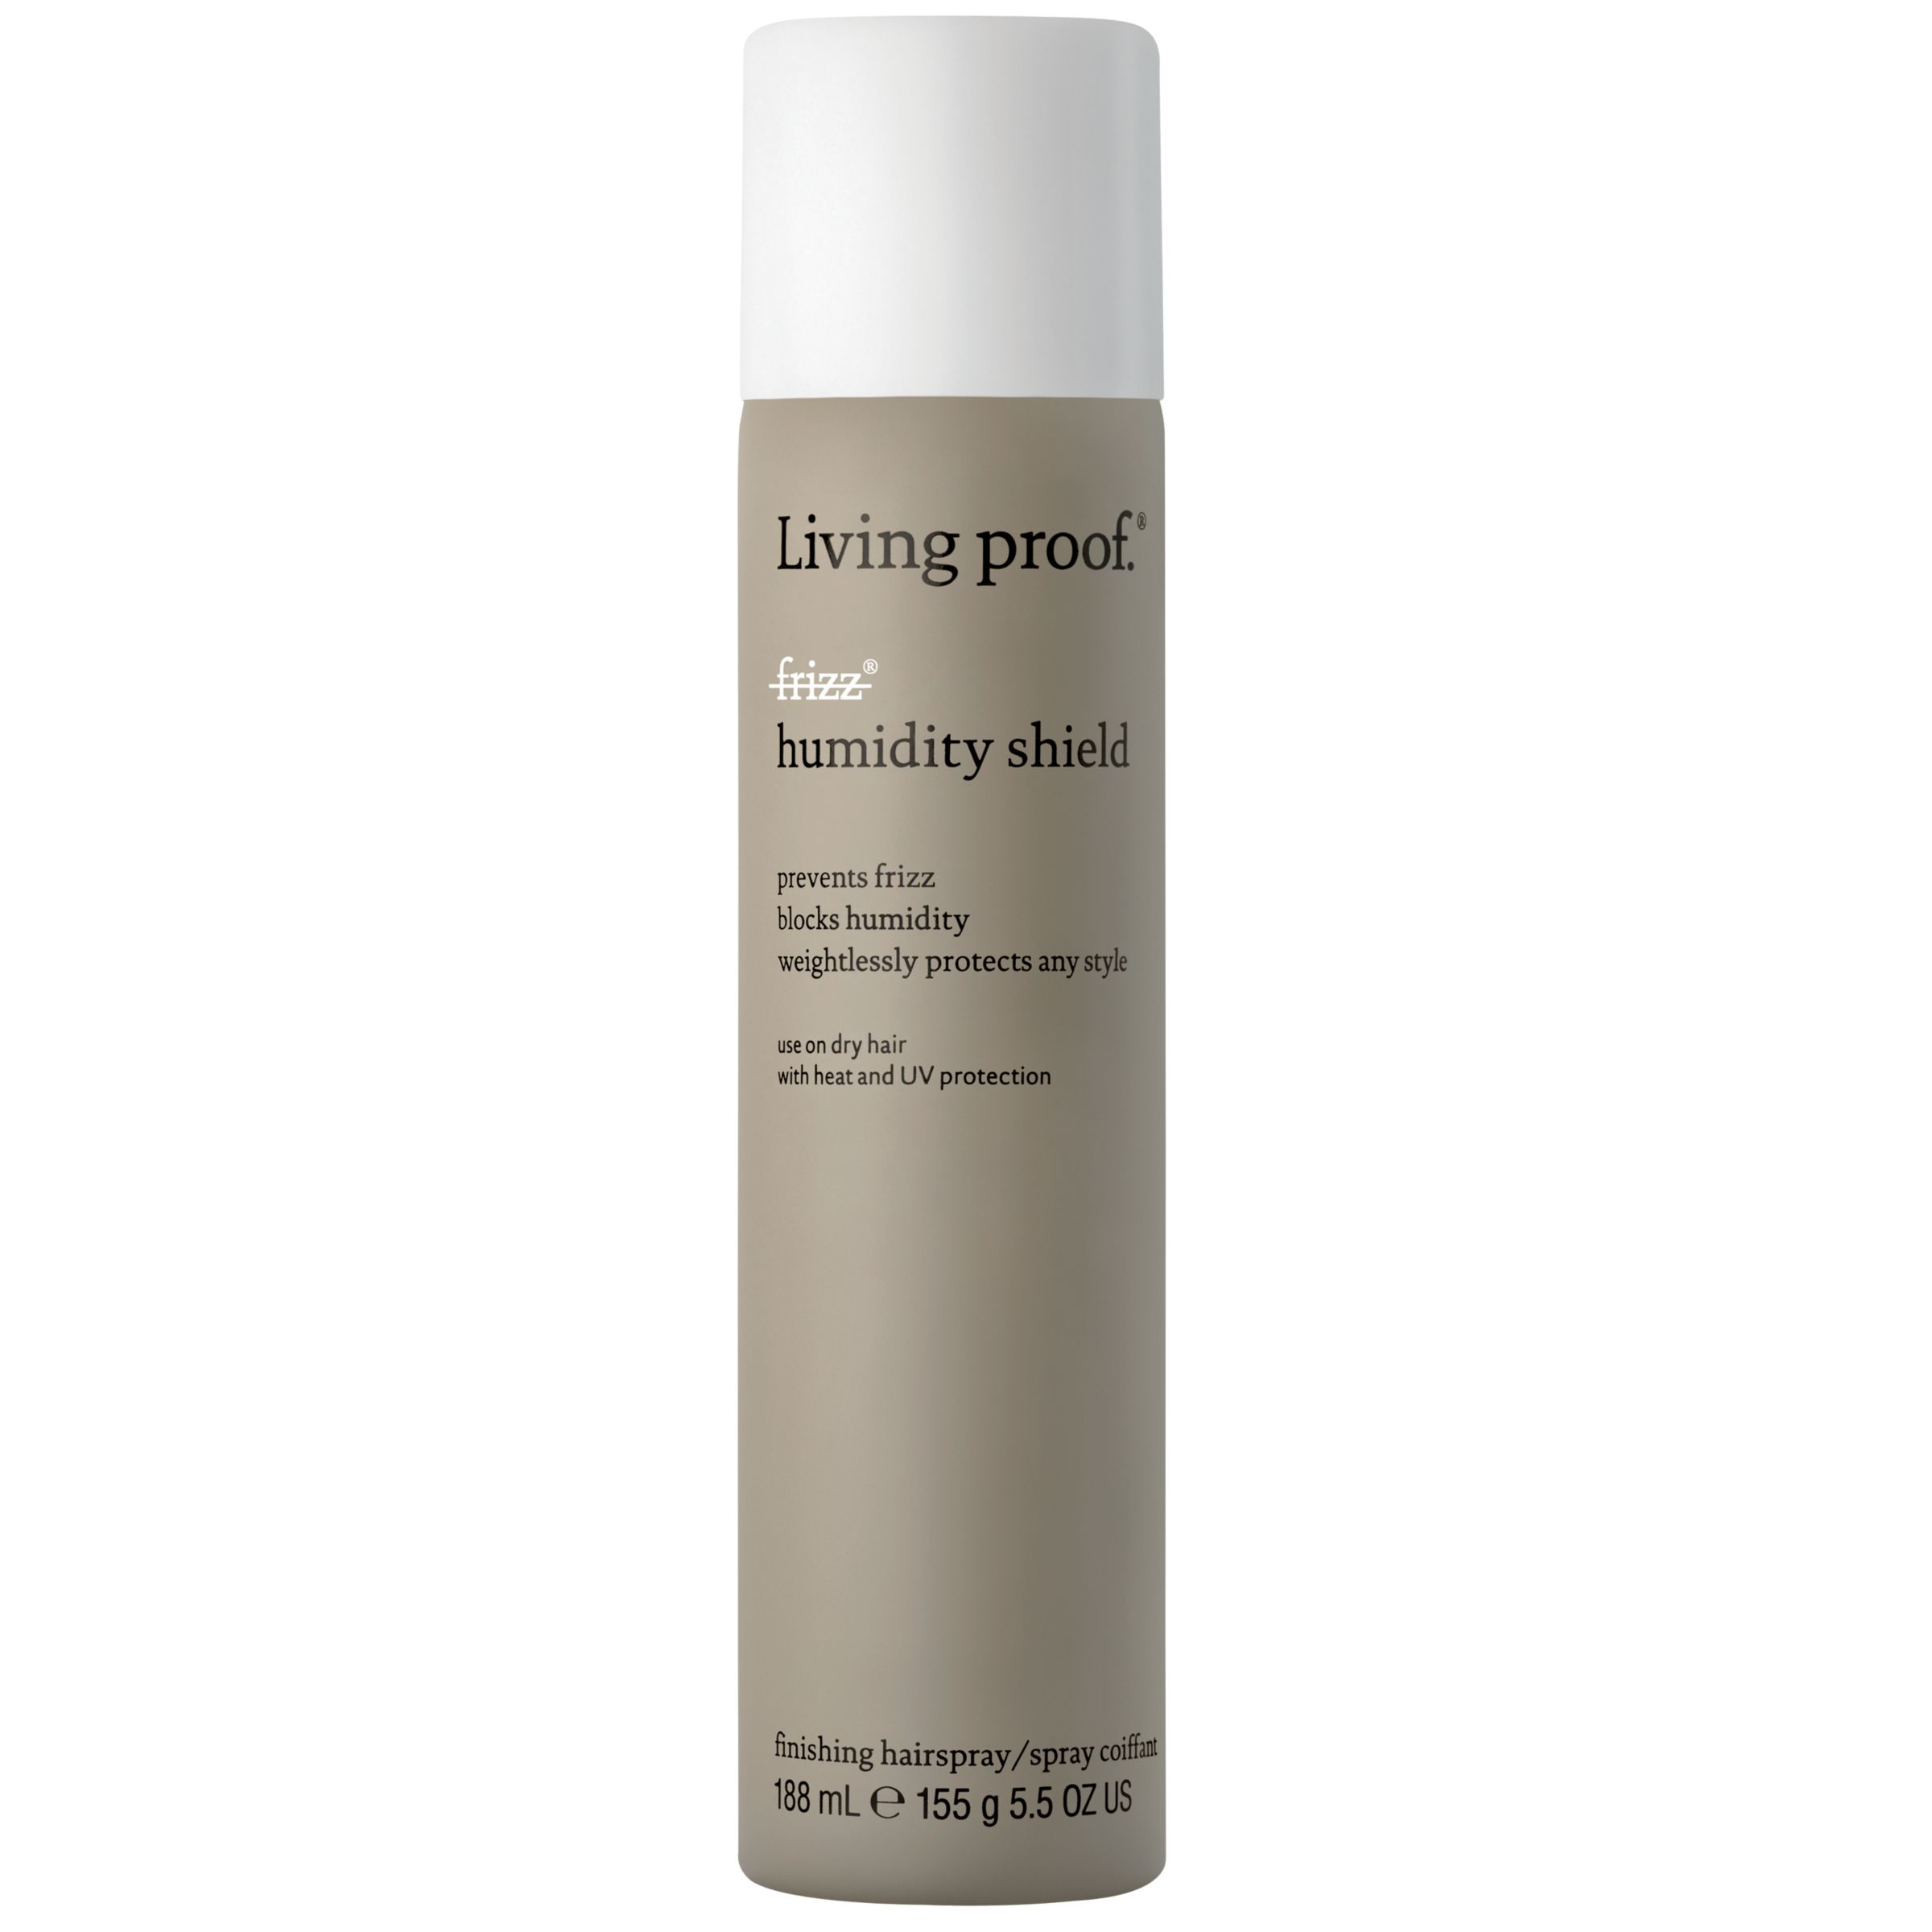 Living Proof Living Proof No Frizz Humidity Shield, 188ml